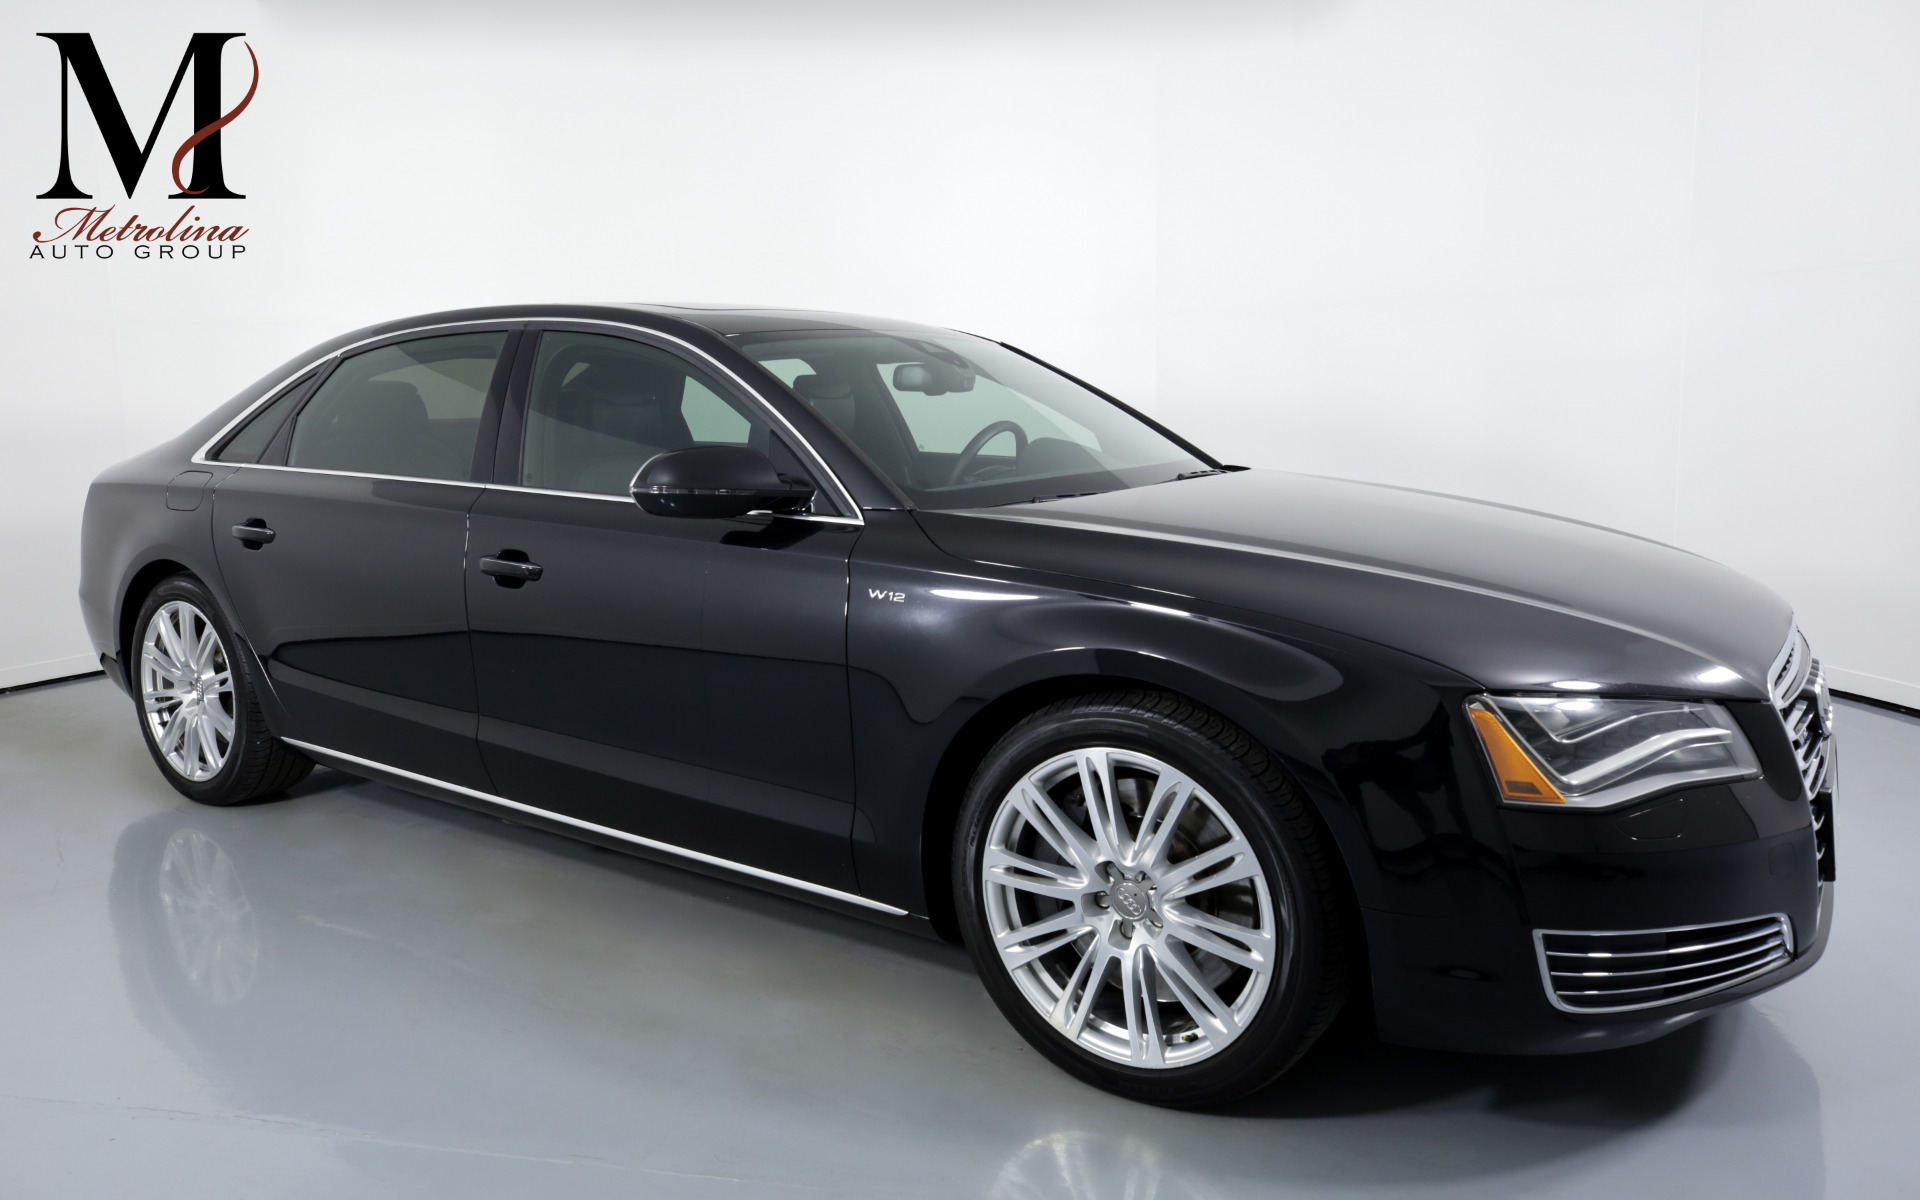 Used 2013 Audi A8 L W12 quattro for sale Sold at Metrolina Auto Group in Charlotte NC 28217 - 1